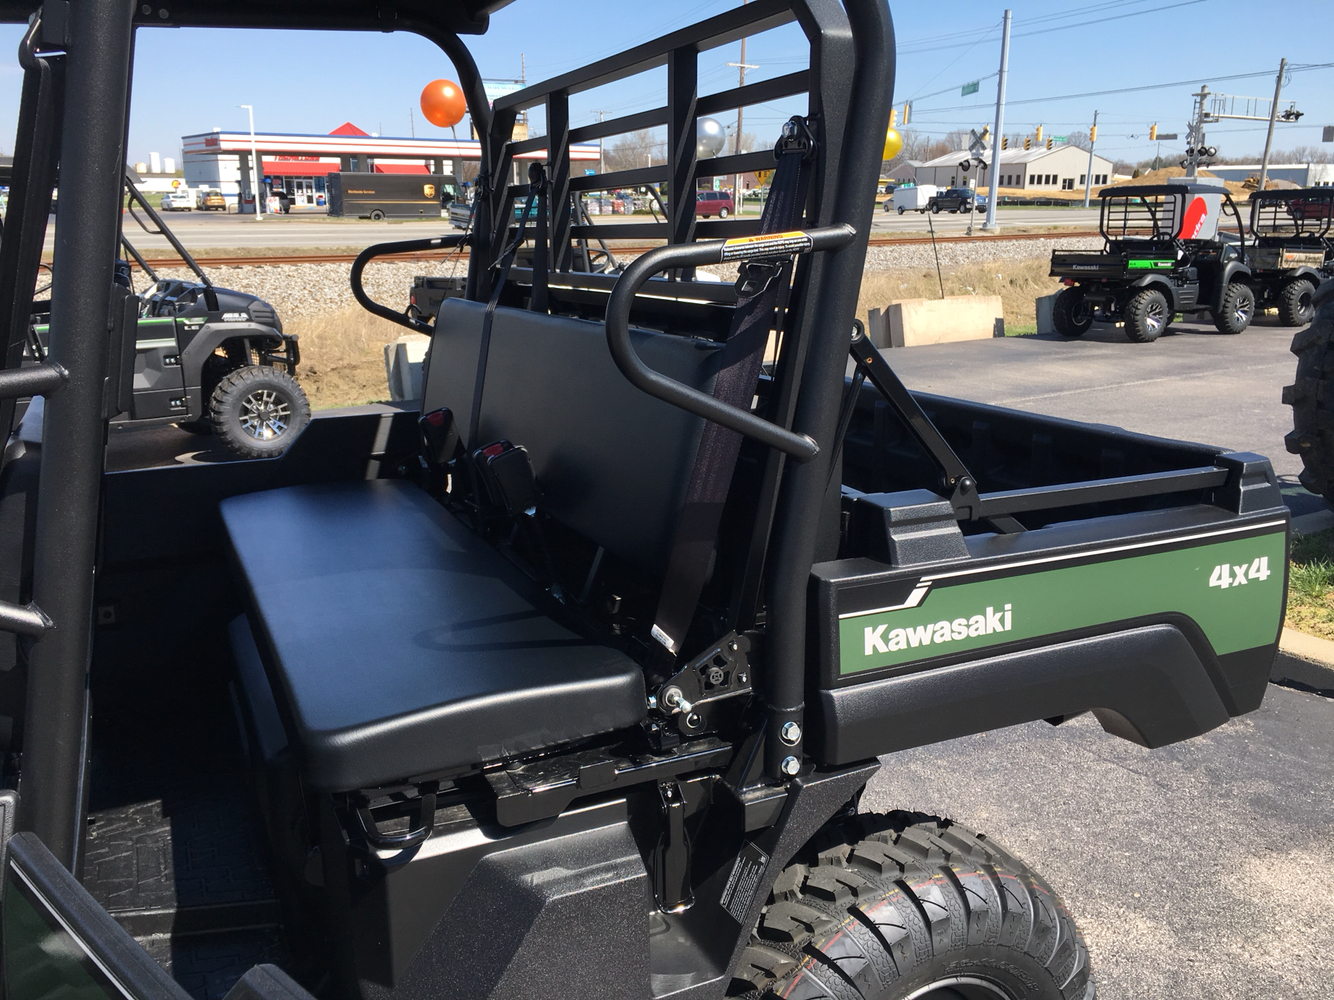 2019 Kawasaki Mule PRO-FXT EPS in Evansville, Indiana - Photo 23